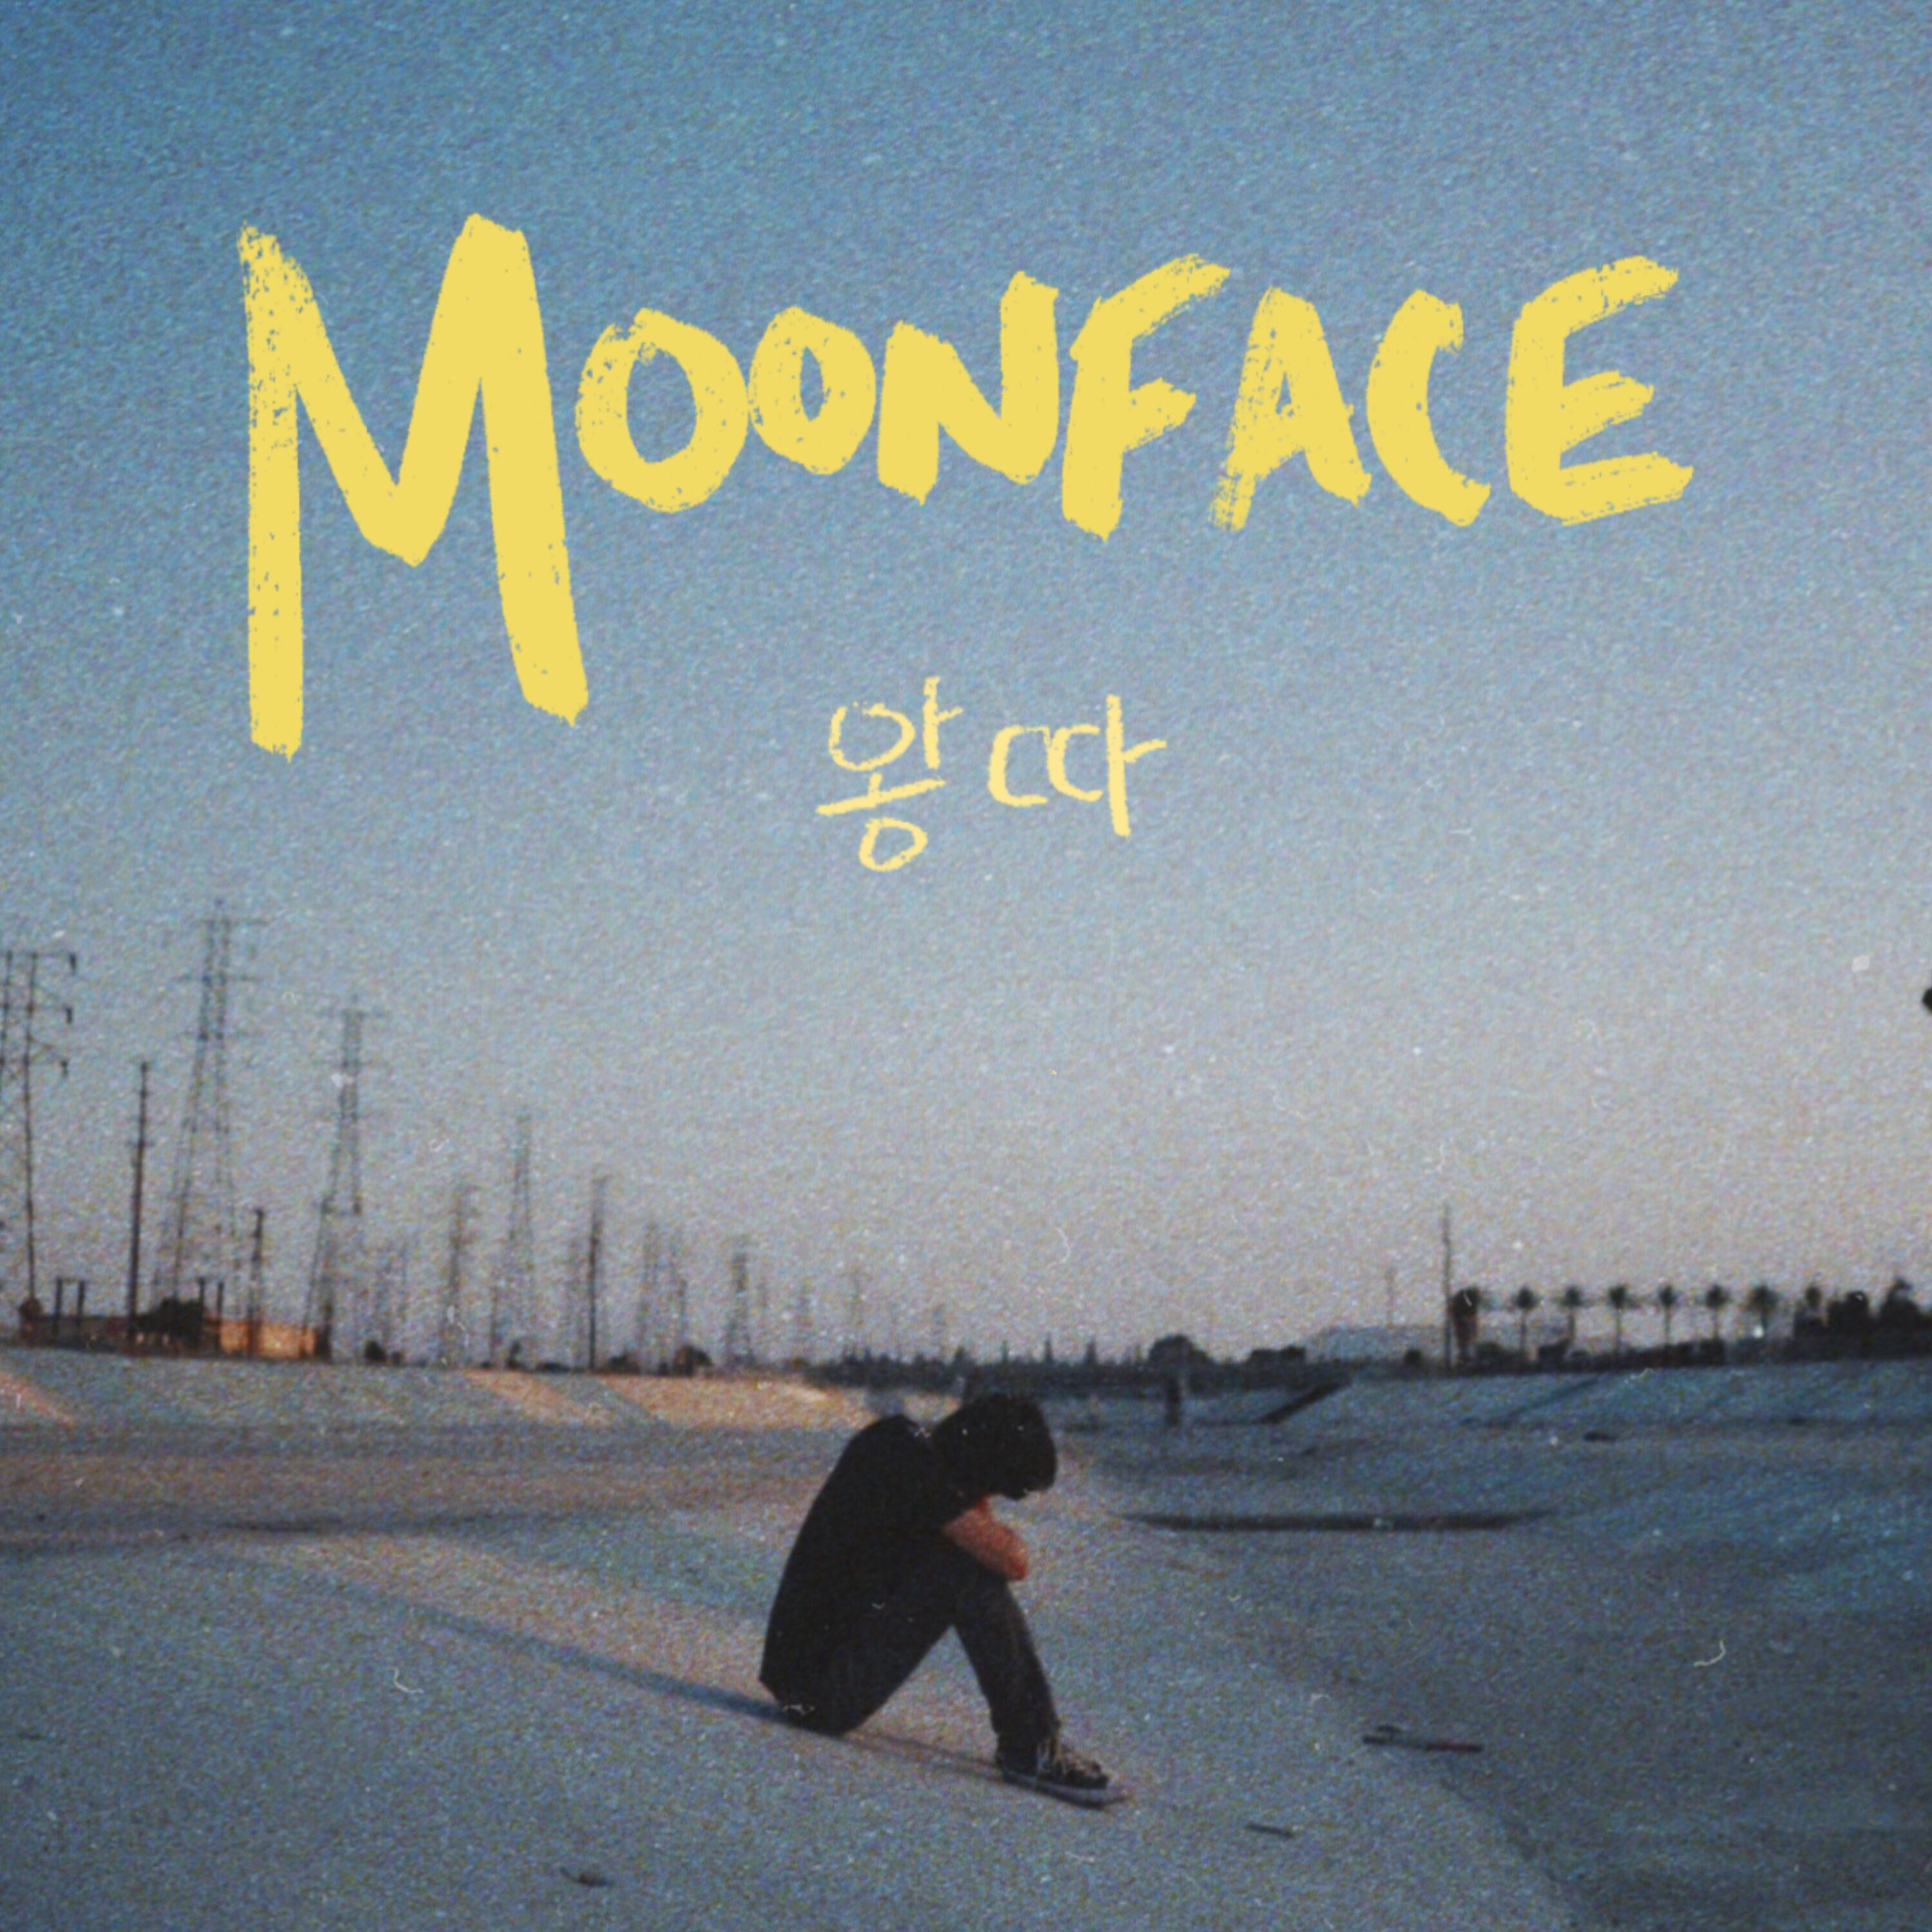 MOONFACE debuts on Wednesday, October 9